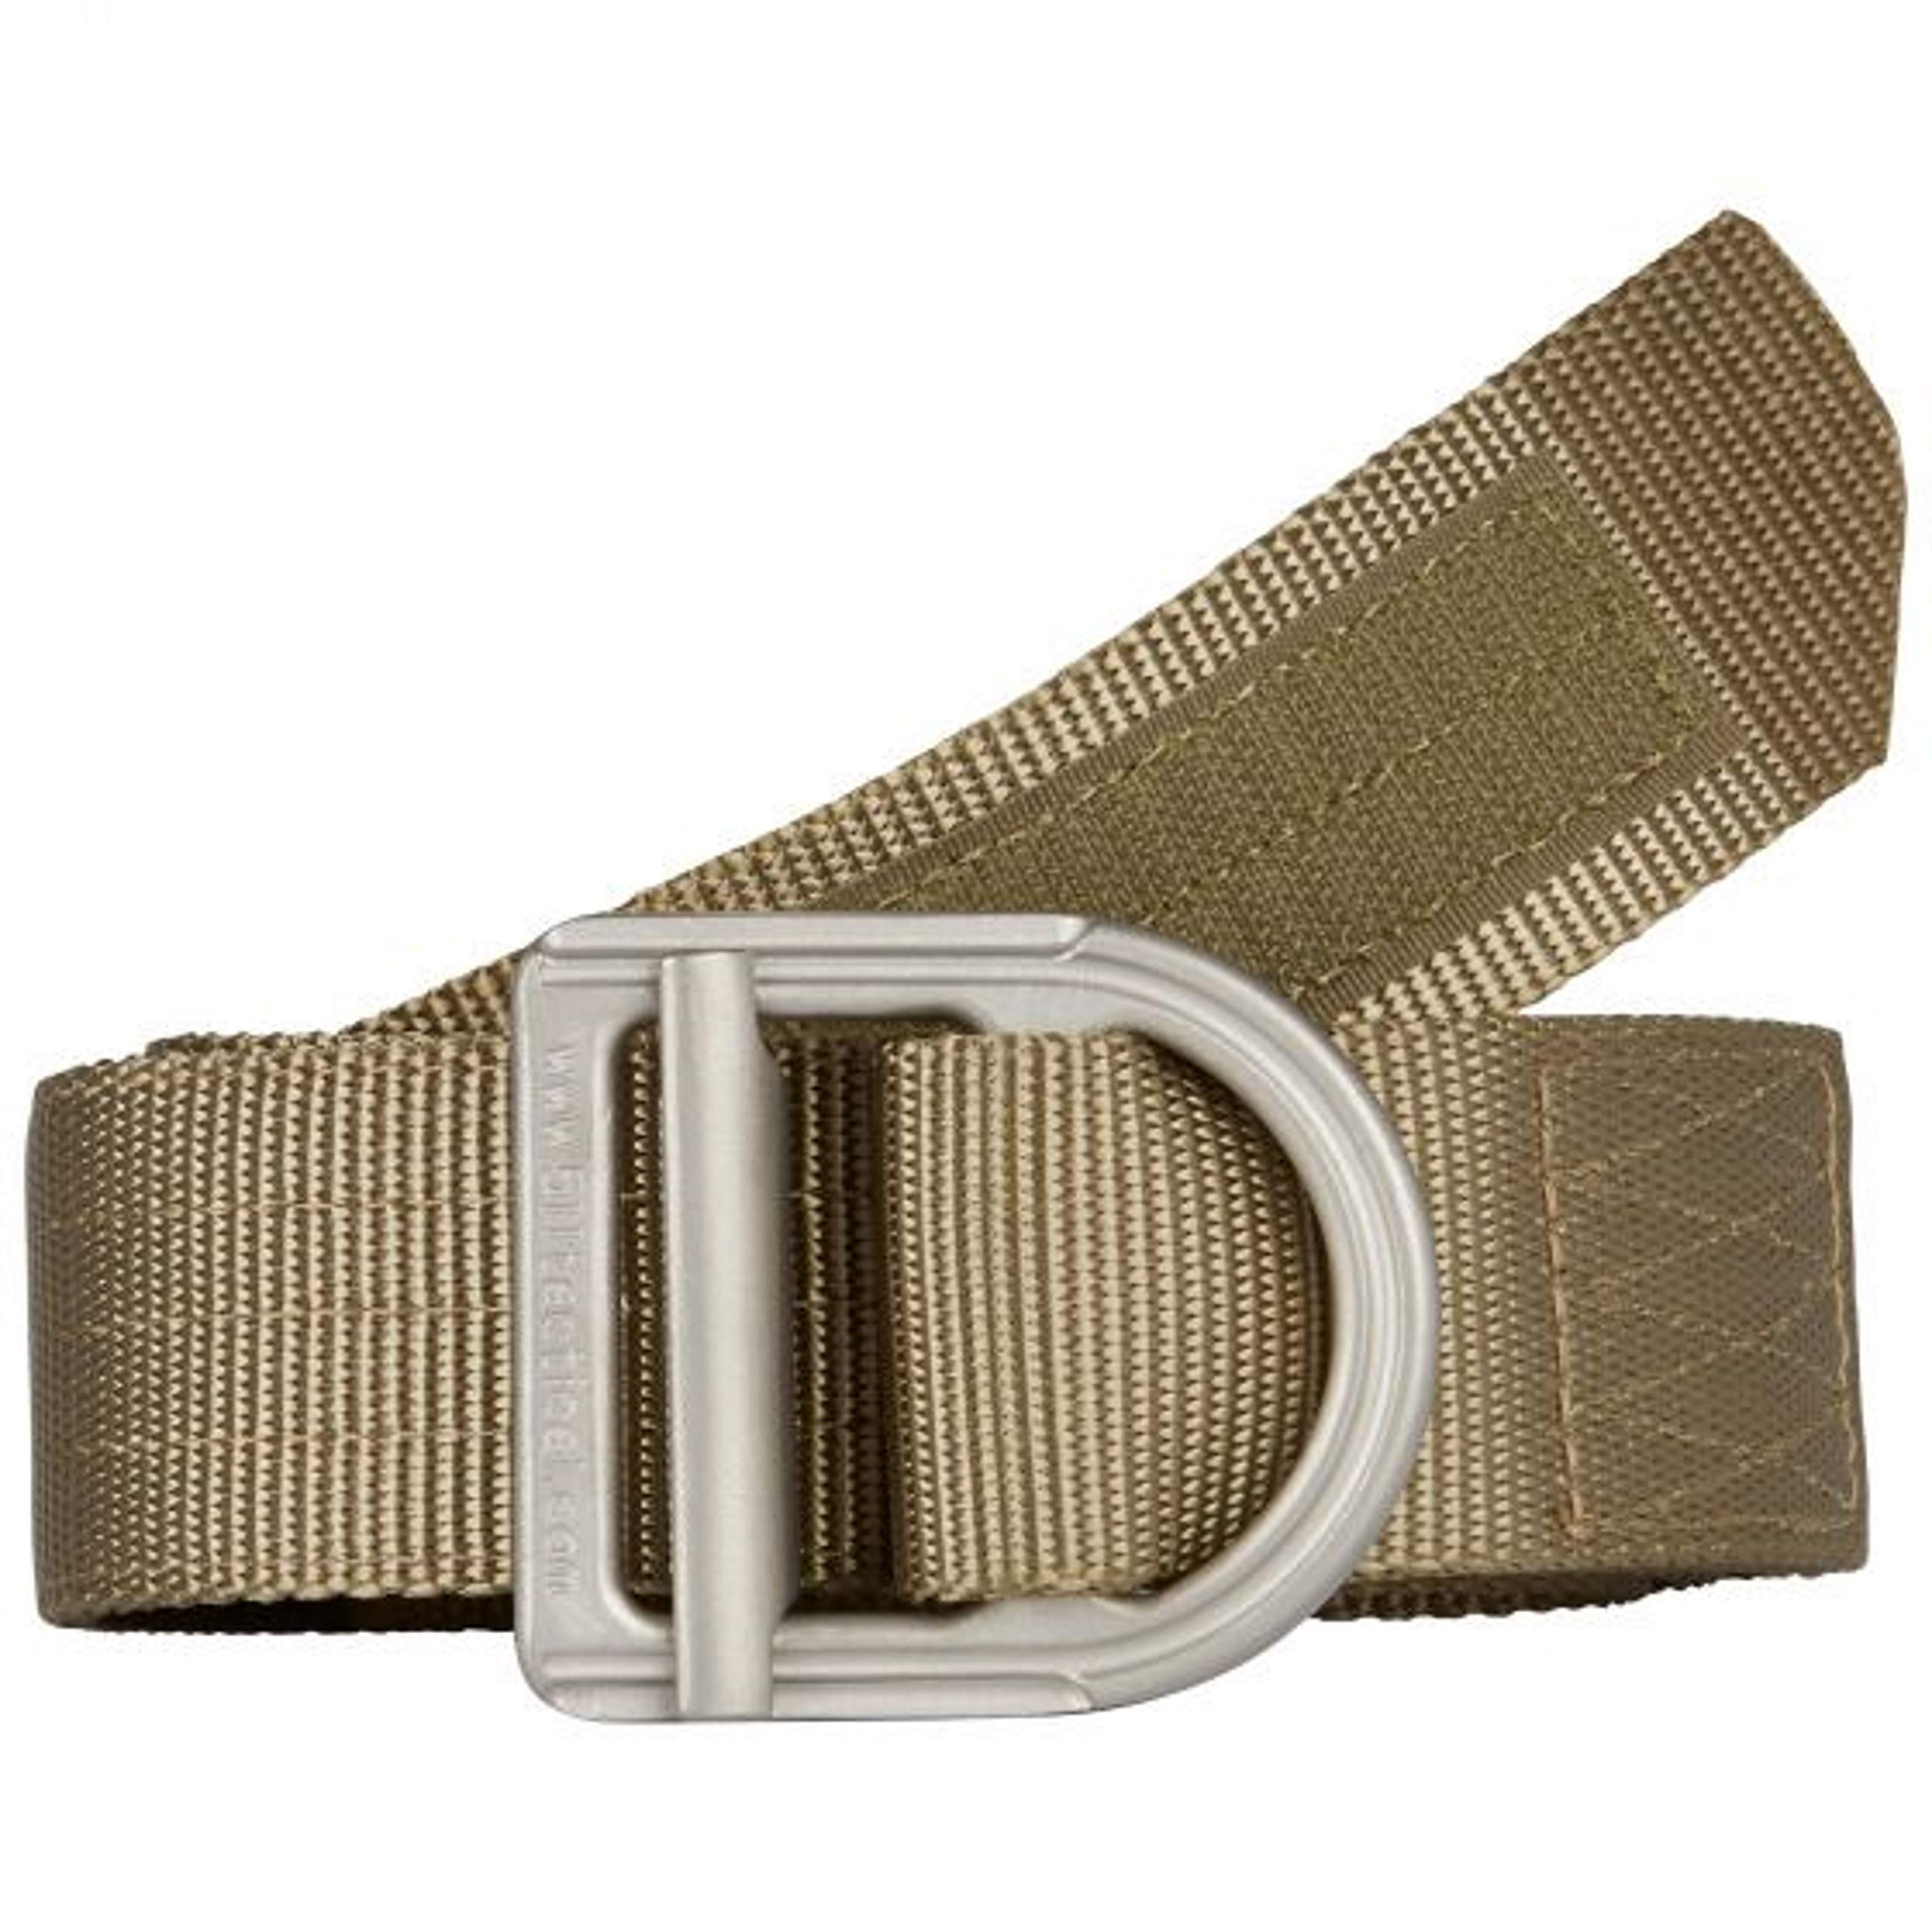 5.11  Trainer 1.5'' Tactical Belt, Heavy Duty for Military and Law Enforcement, Style 59409, Sandstone (328), M